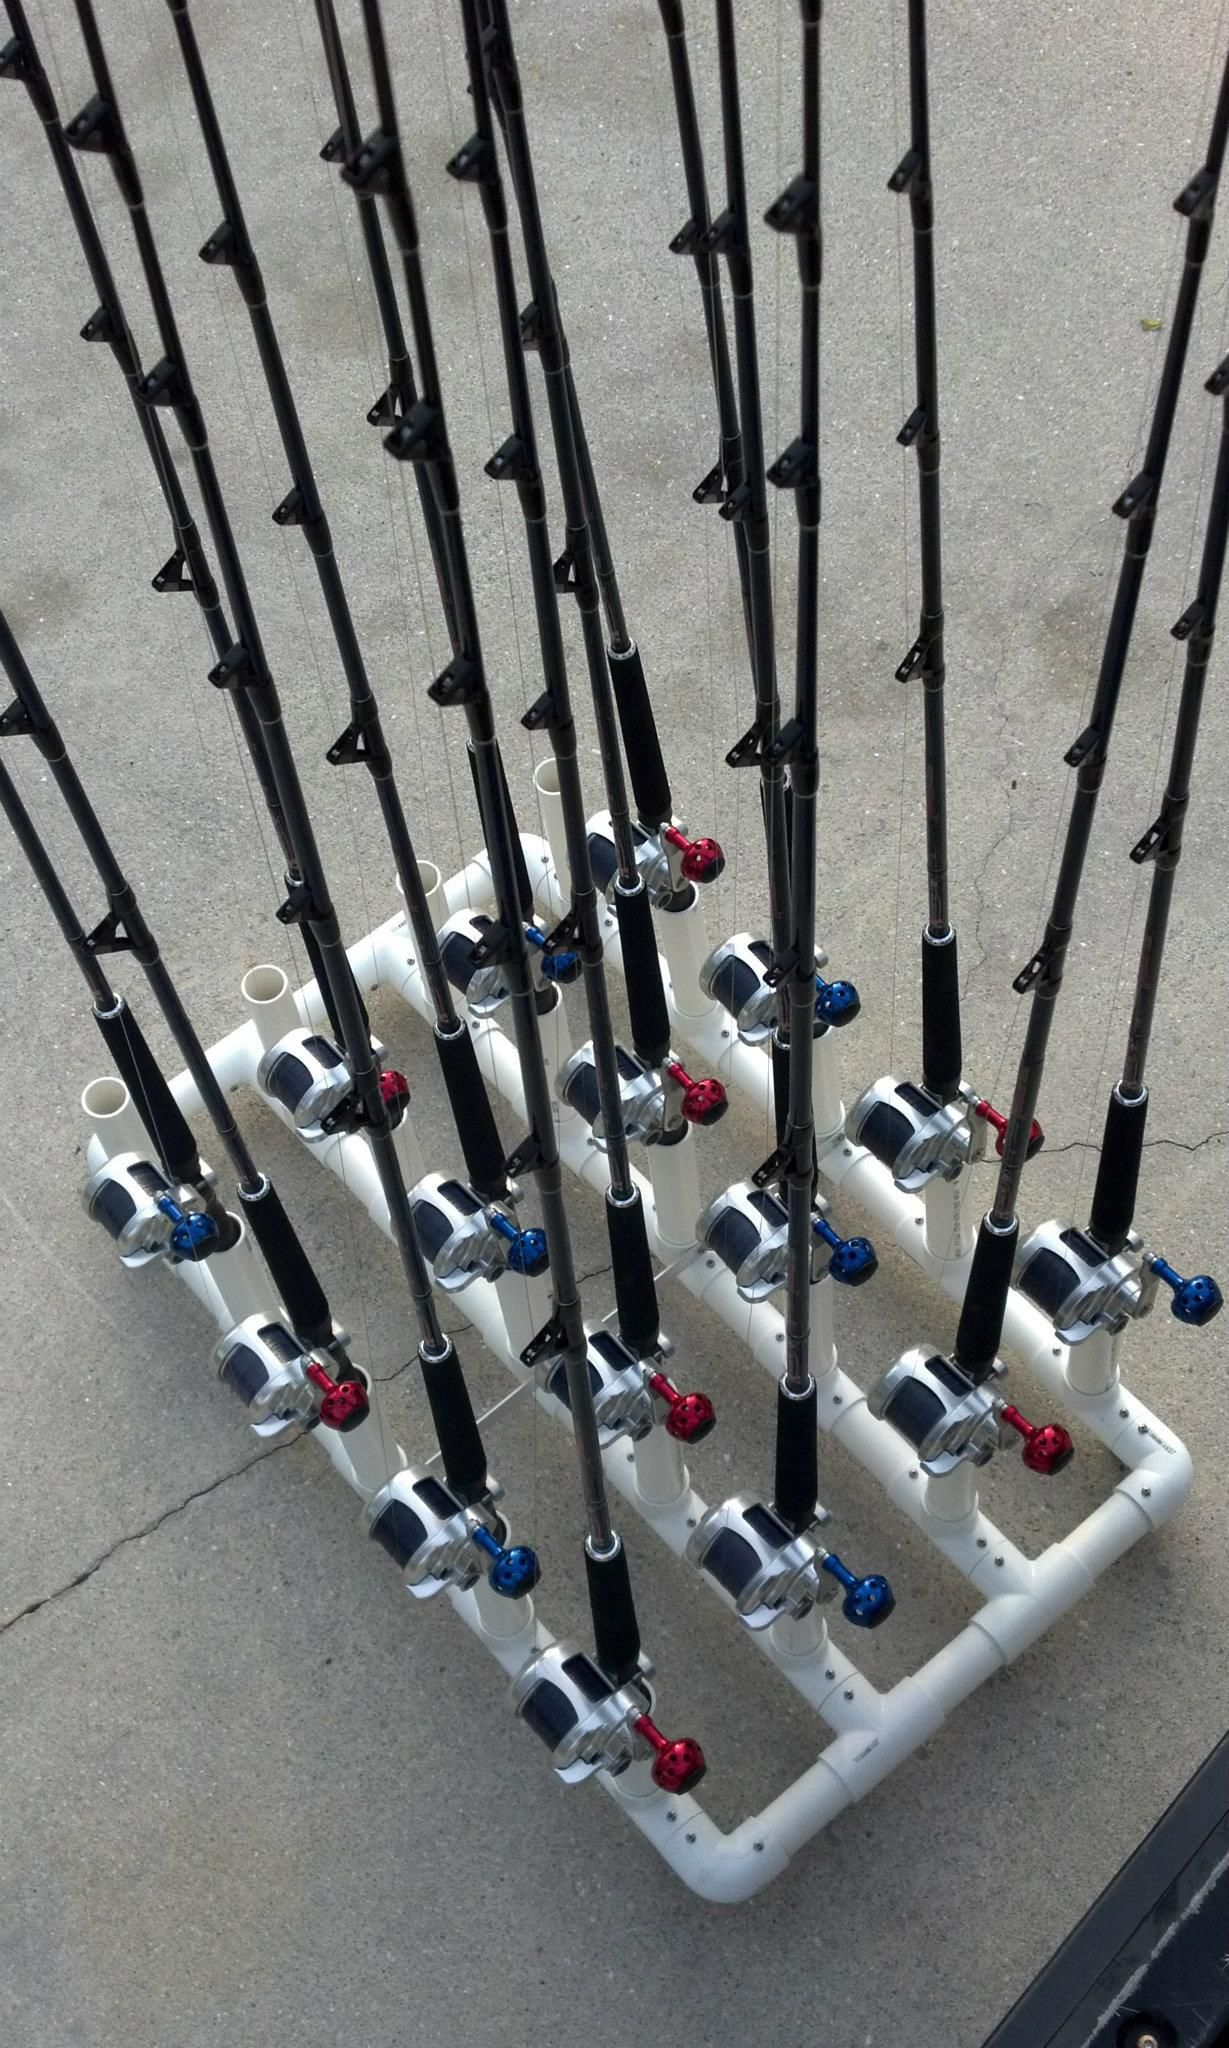 Pvc fishing rod holder ideas fishing rod holder for Fishing rod rack